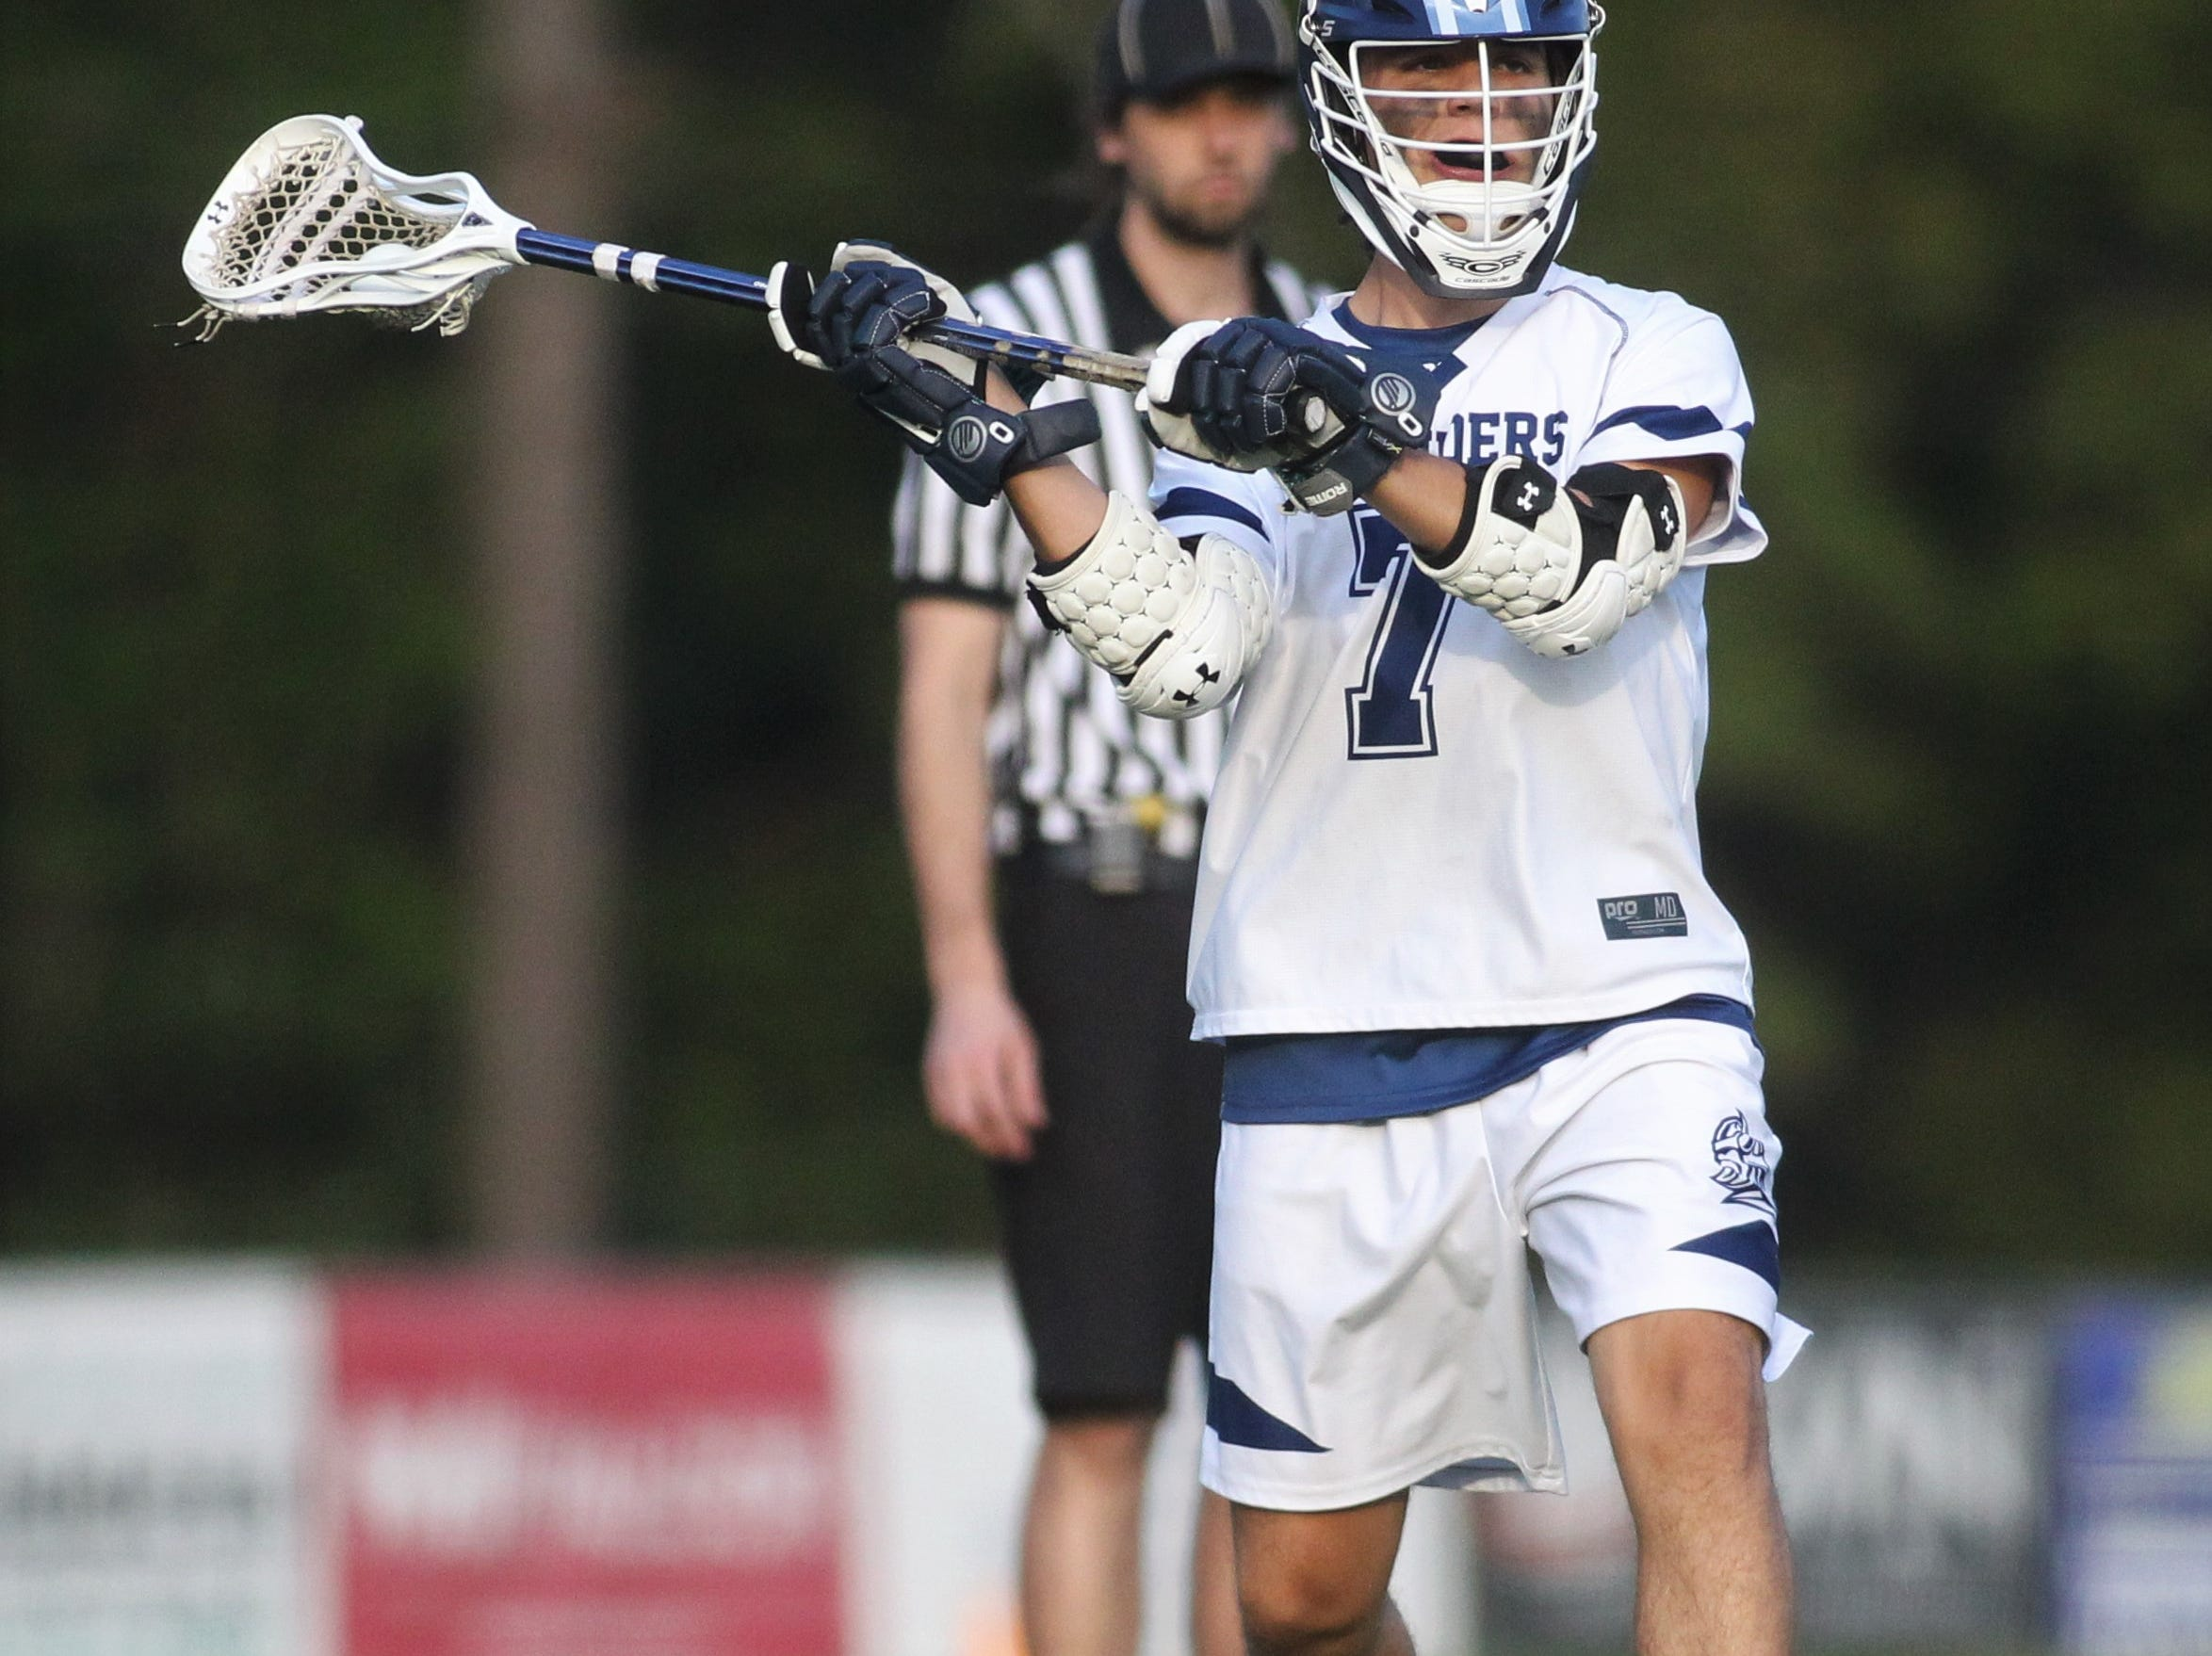 Maclay junior Nathan Sharkey looks for a pass as the Marauders' lacrosse team beat Leon 15-5 on their annual Military Appreciation Night on March 12, 2019.